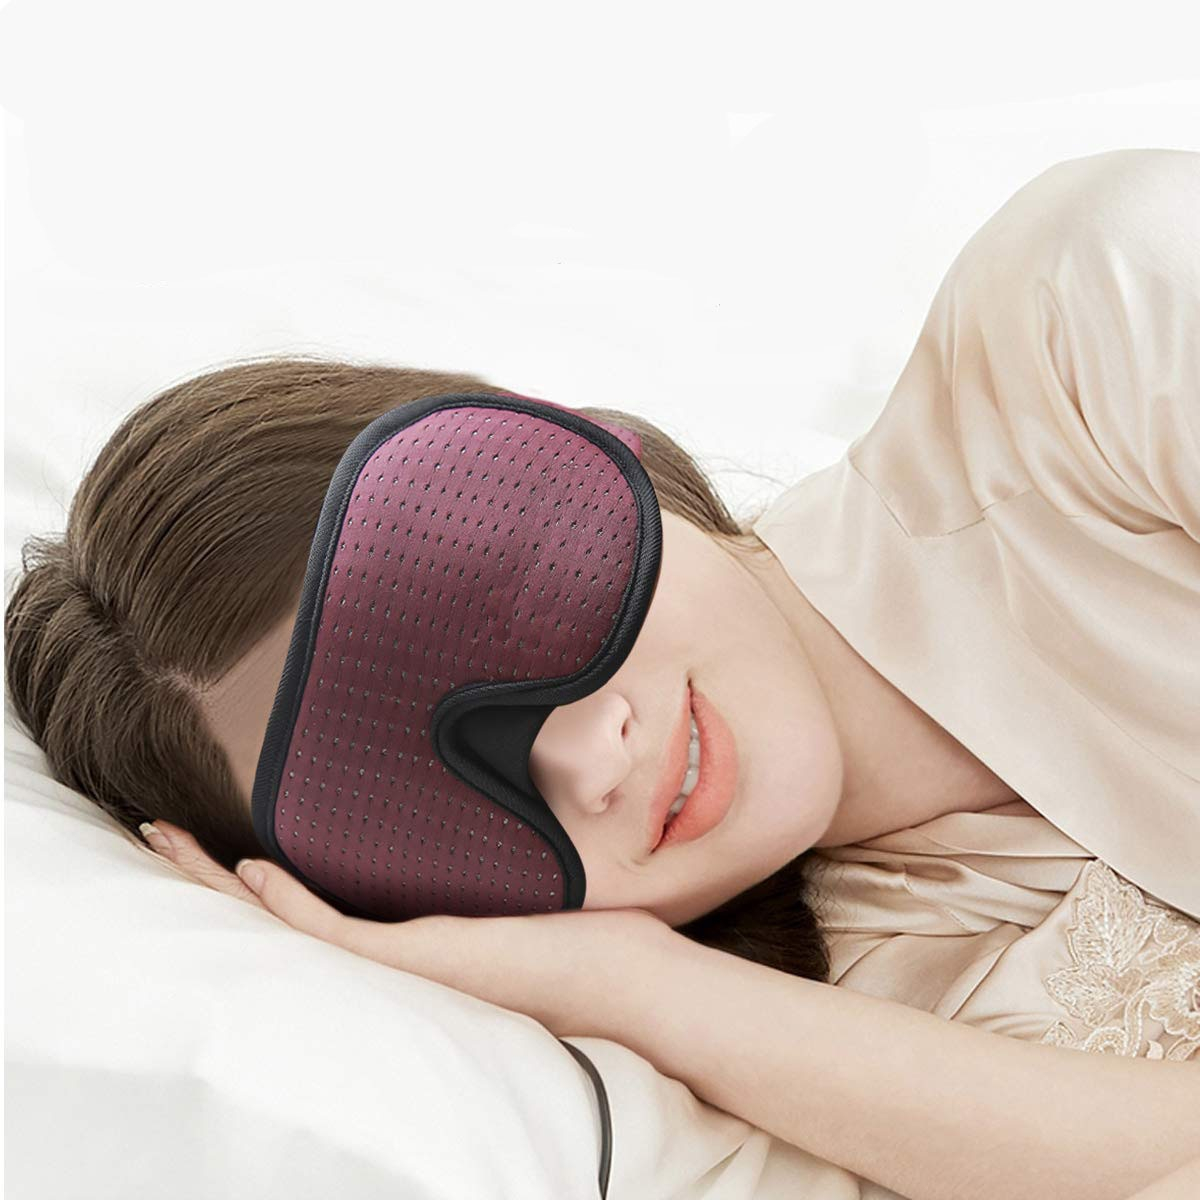 Blindfolds | Sleep Covers For Eyes